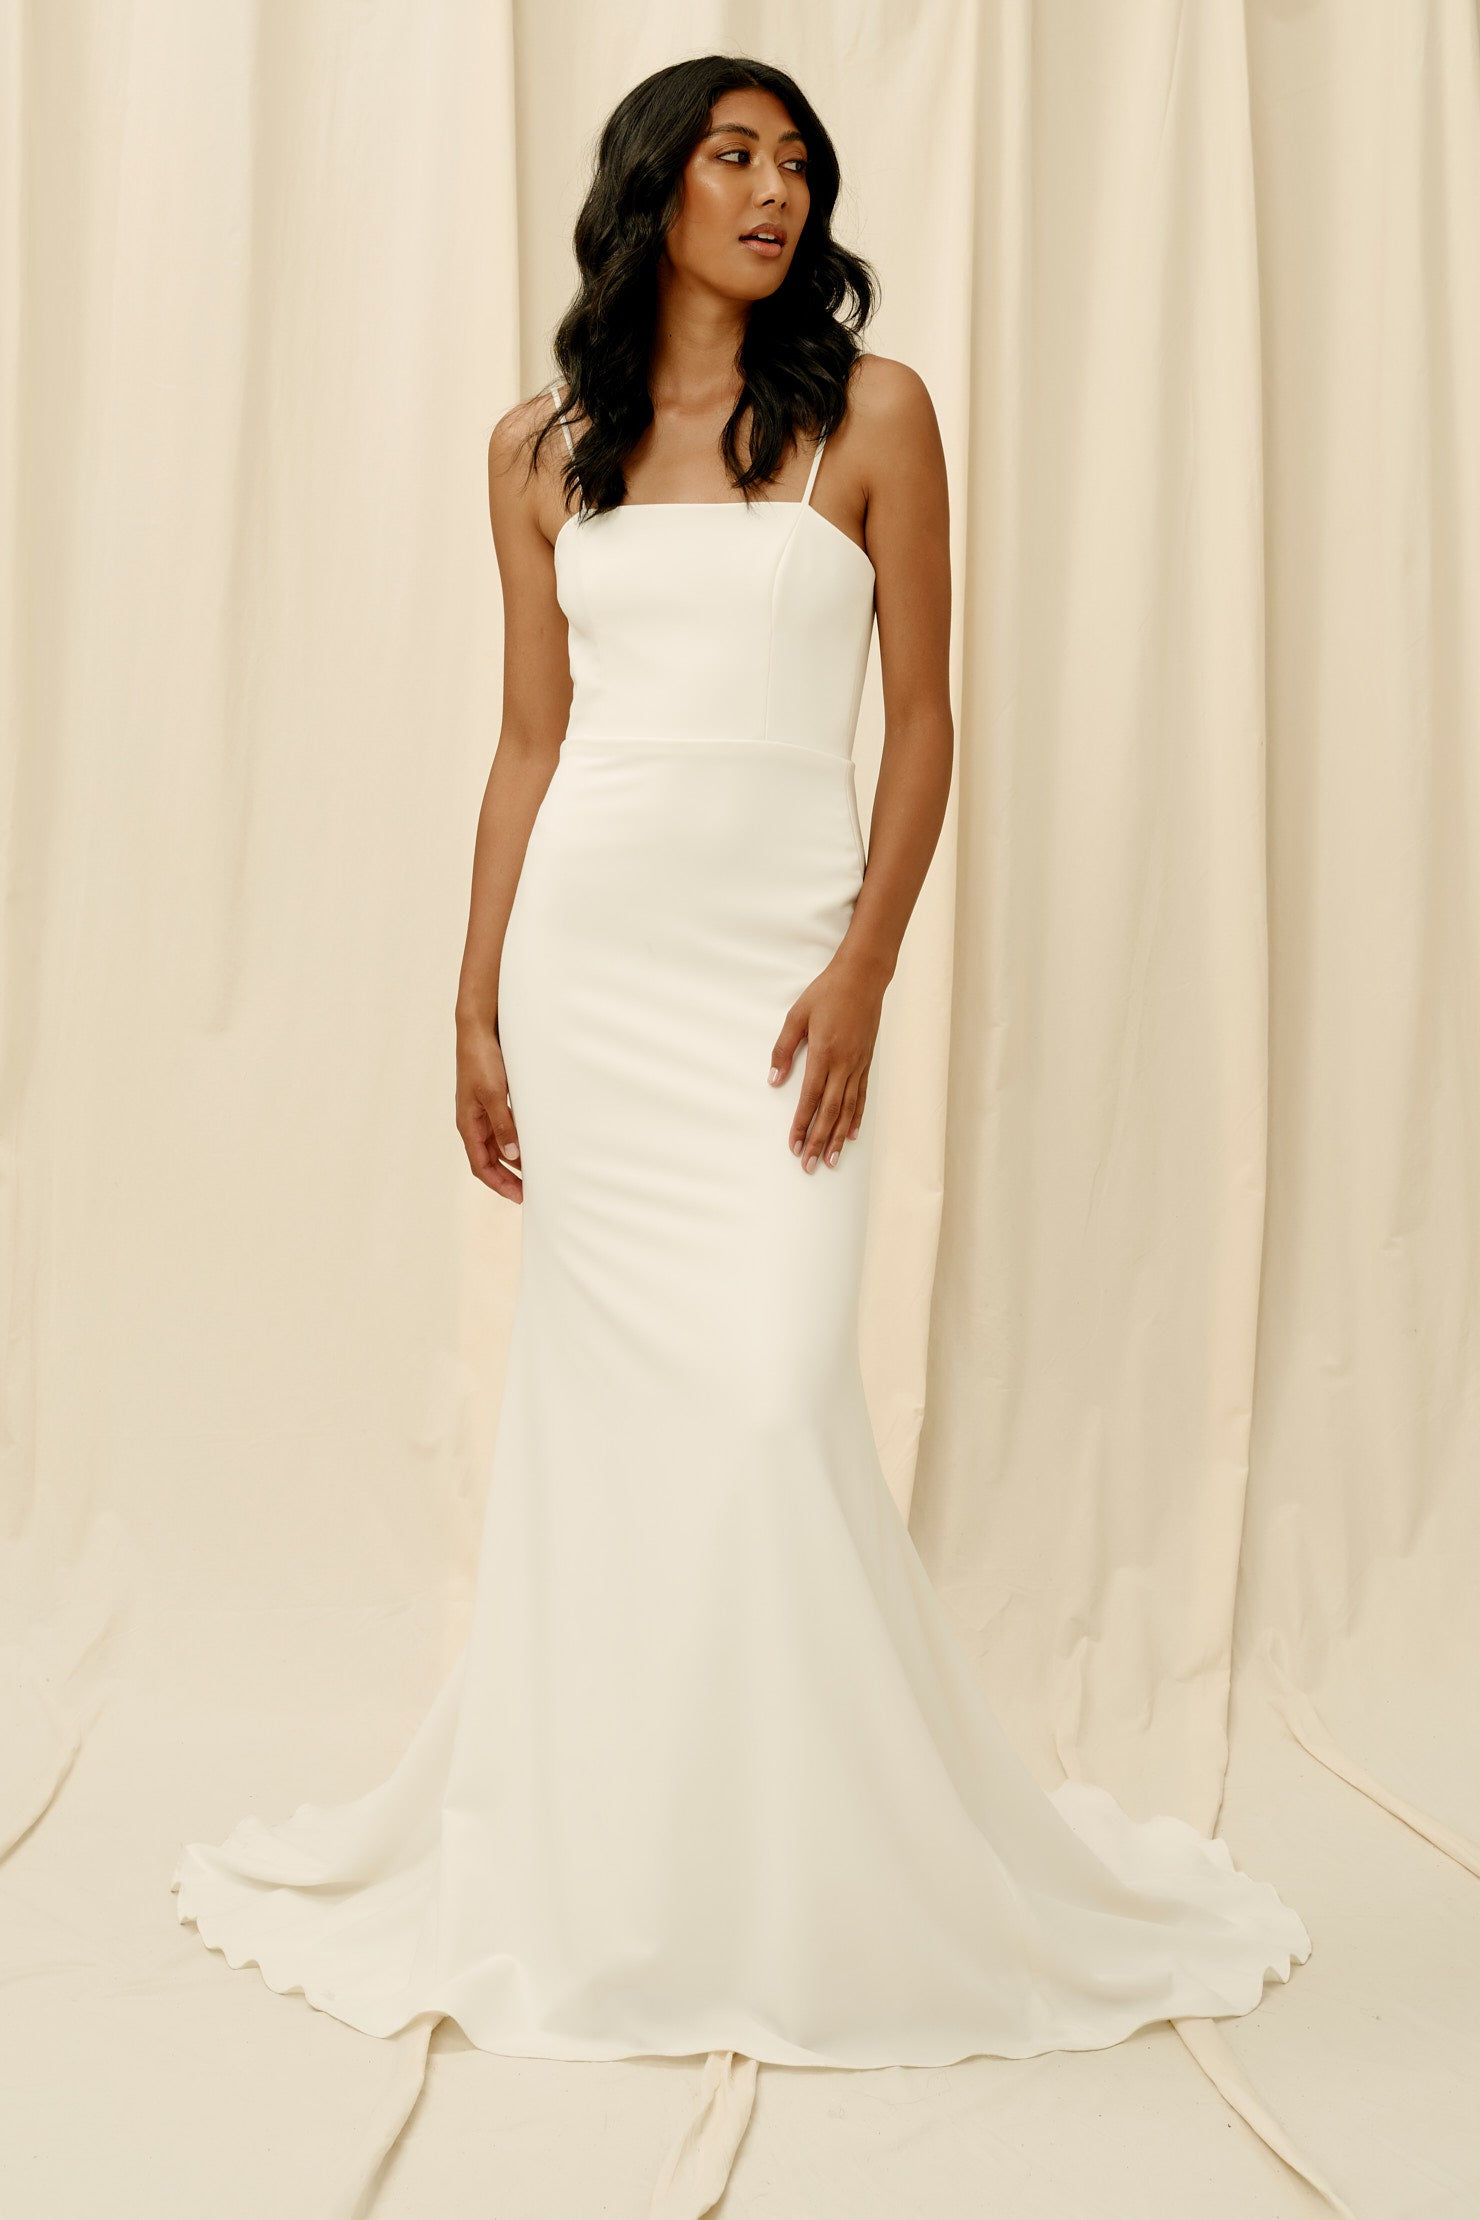 Fitted crepe wedding dress with spaghetti straps